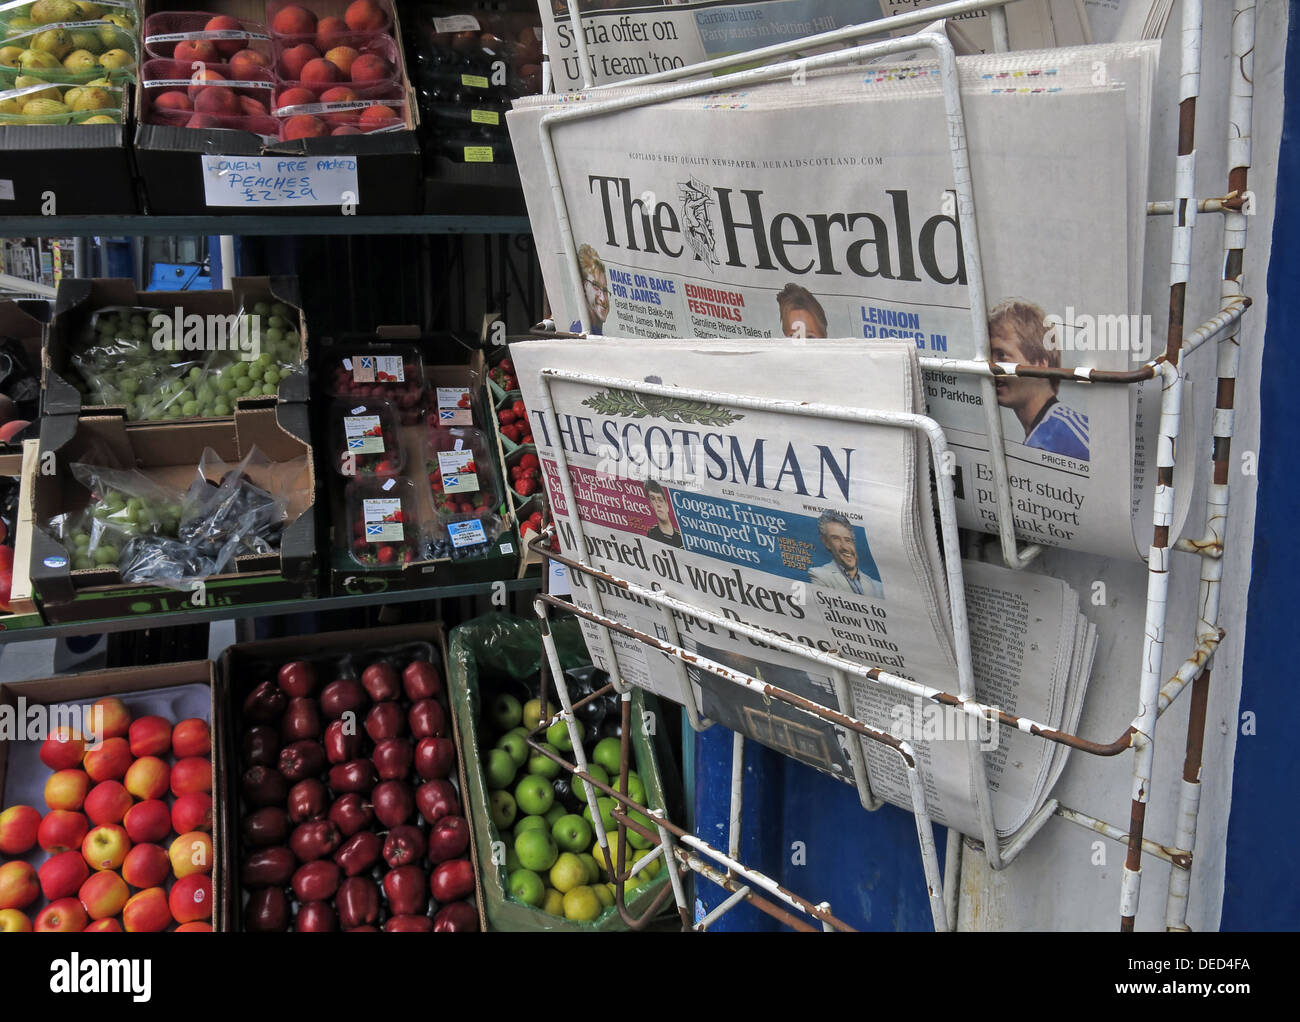 EH1,Scottish,Scot,scots,independance,independence,at,a,grocers,shop,Local,Newspapers,on,a,stand,newstand,newsstand,news,stand,paper,journalism,fruit,international,nort,of,border,press,rack,information,royal,mile,Gotonysmith,Buy Pictures of,Buy Images Of